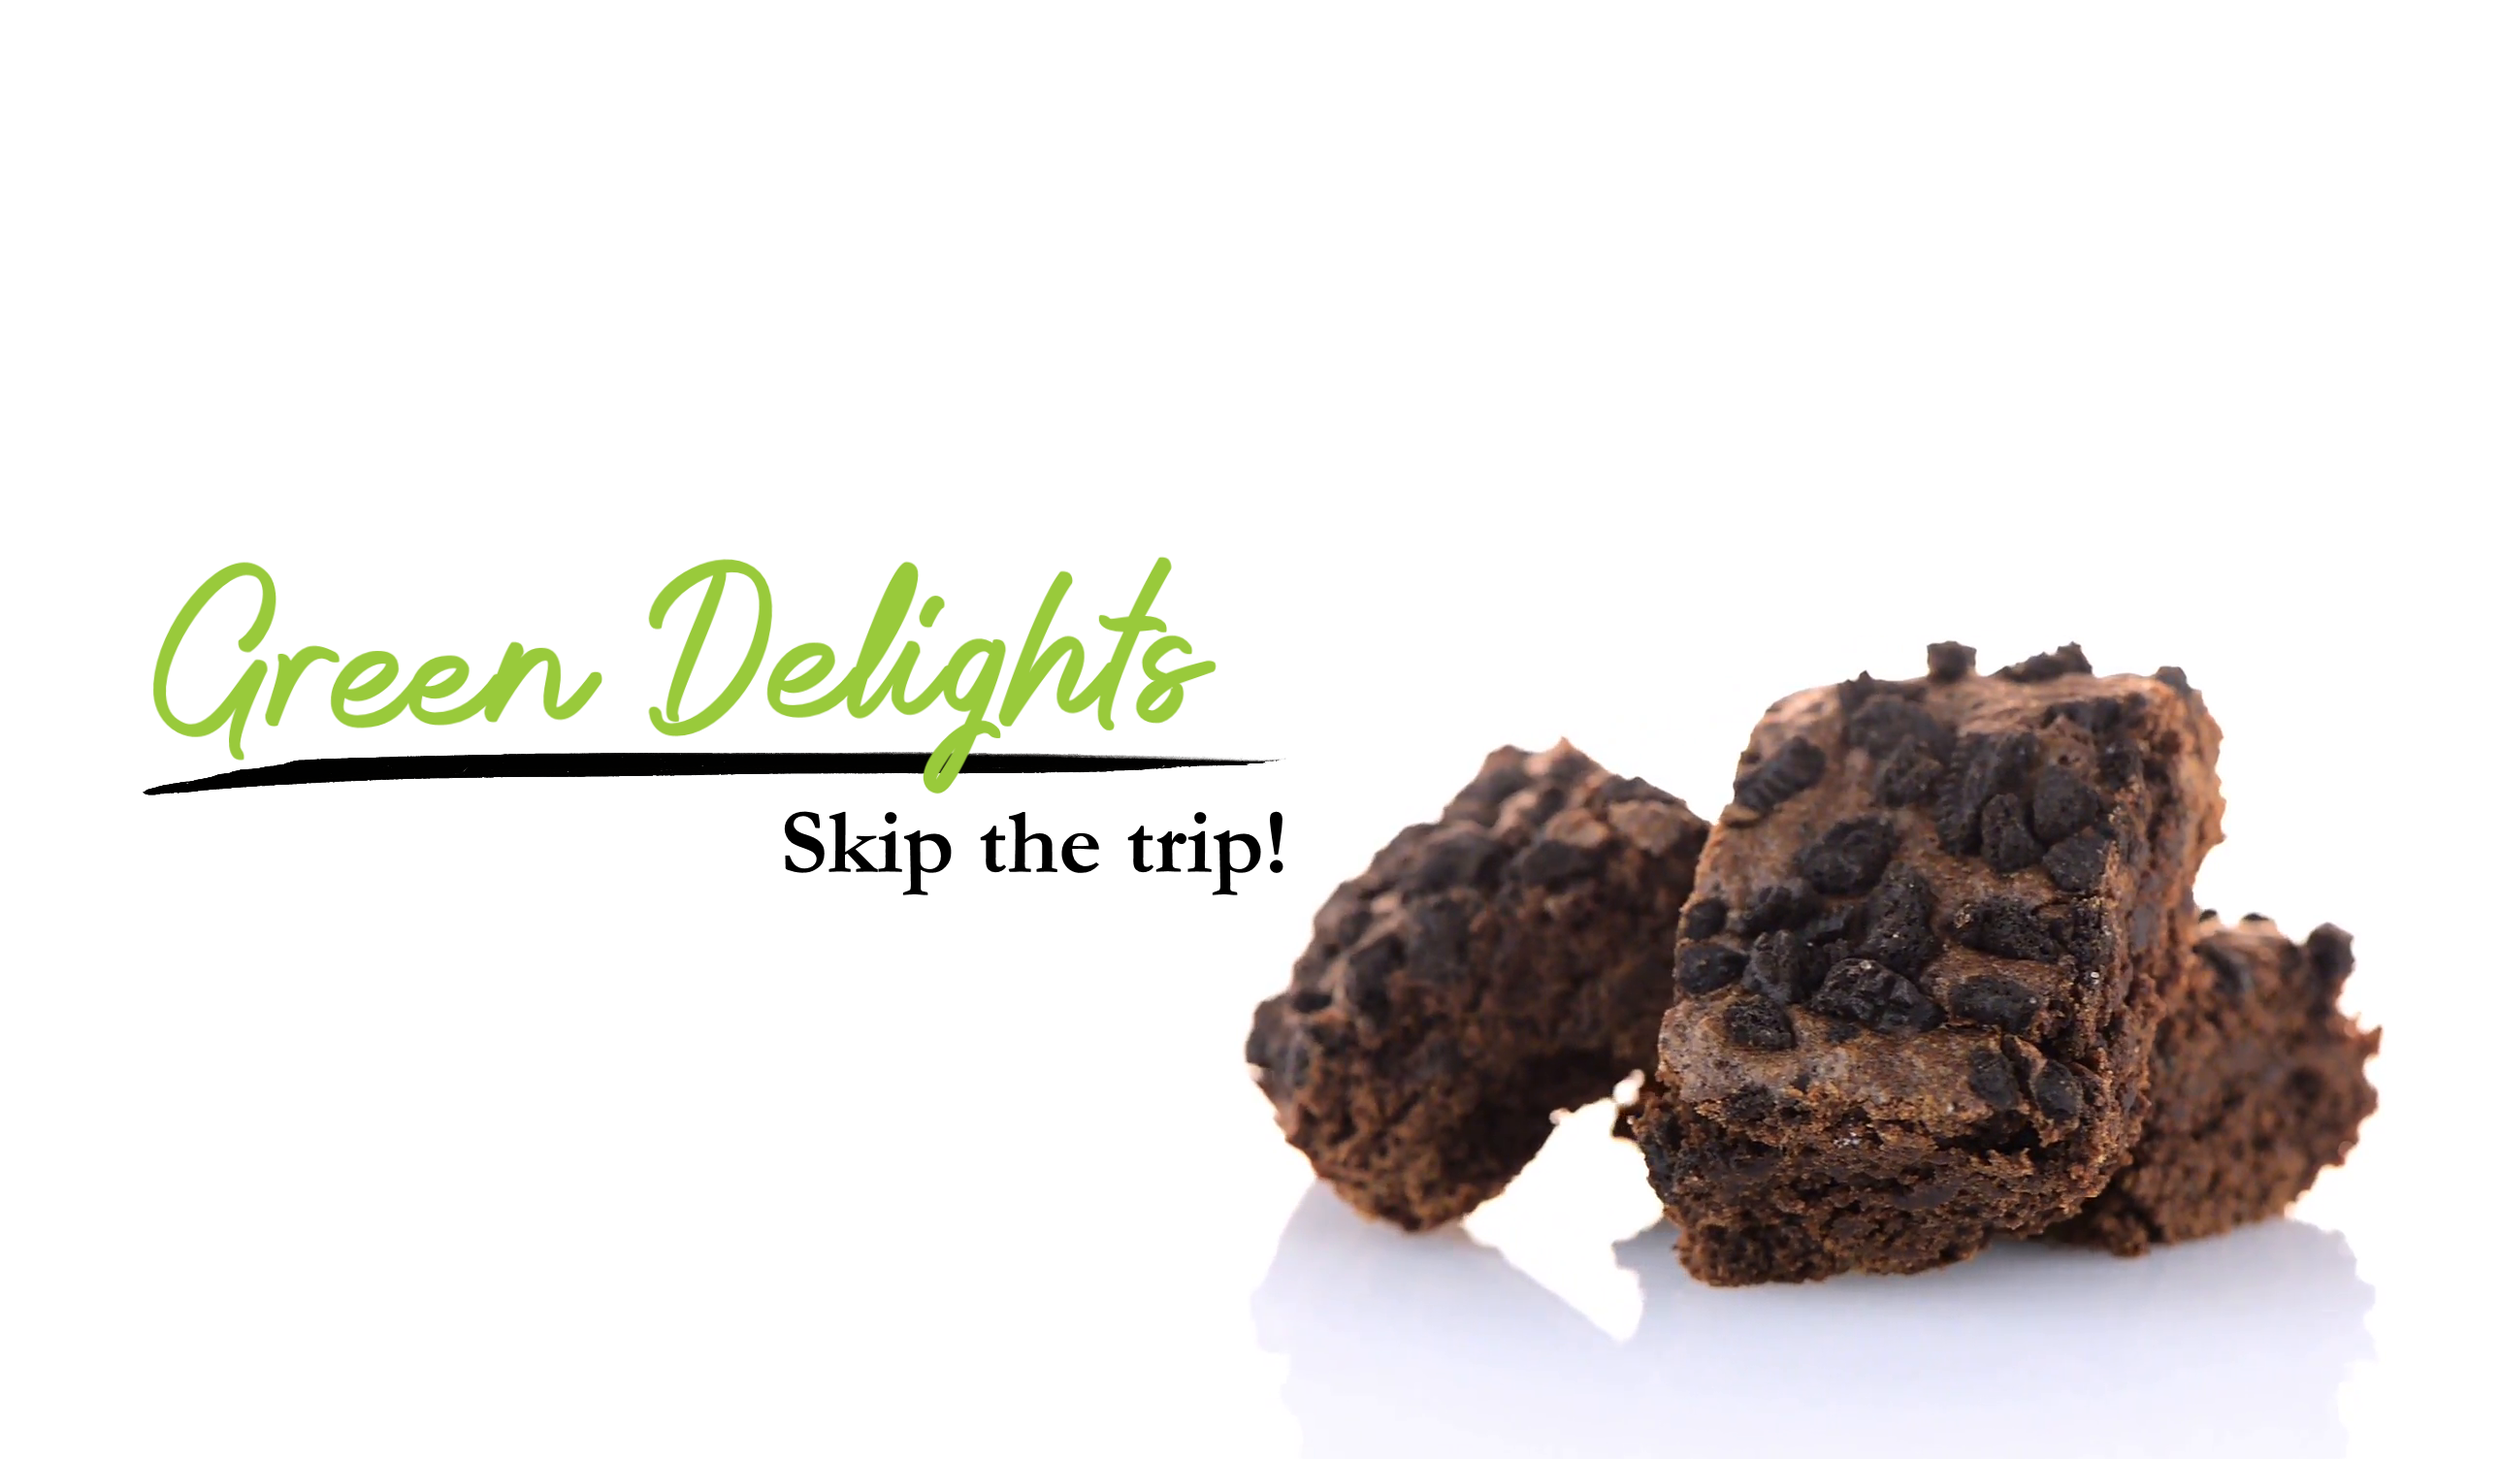 The small batch CBD baked goods from Green Delights are fresh, delicious, and made with love.    Based in Northern California.